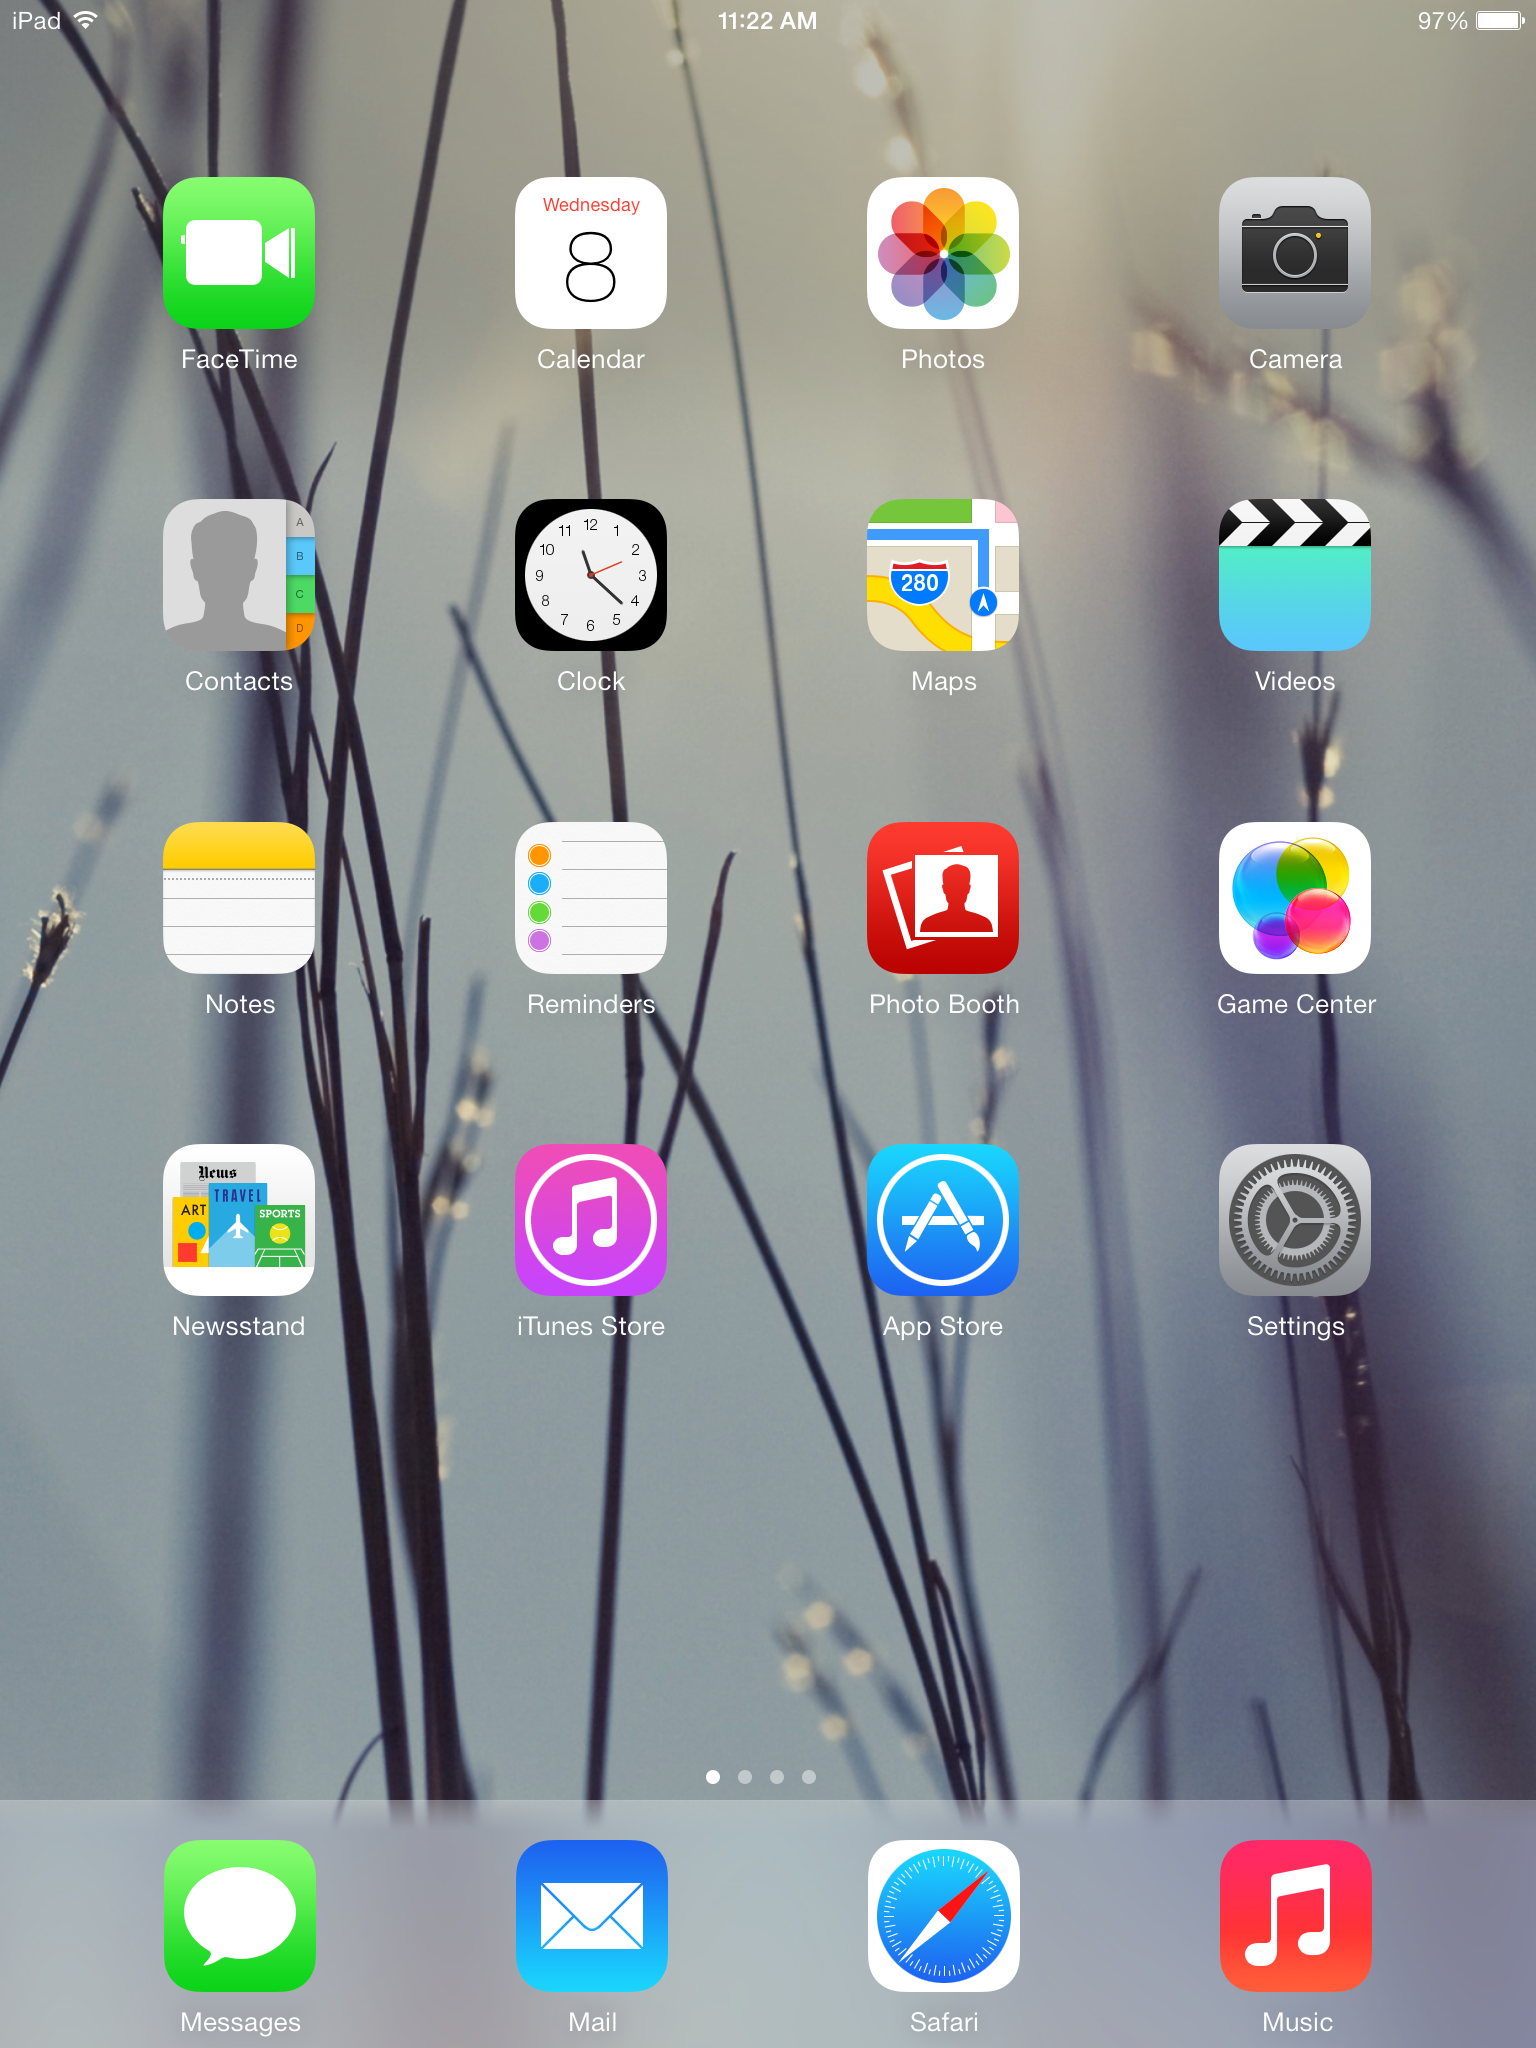 iOS is essentially an app drawer so the wallpaper is always present.